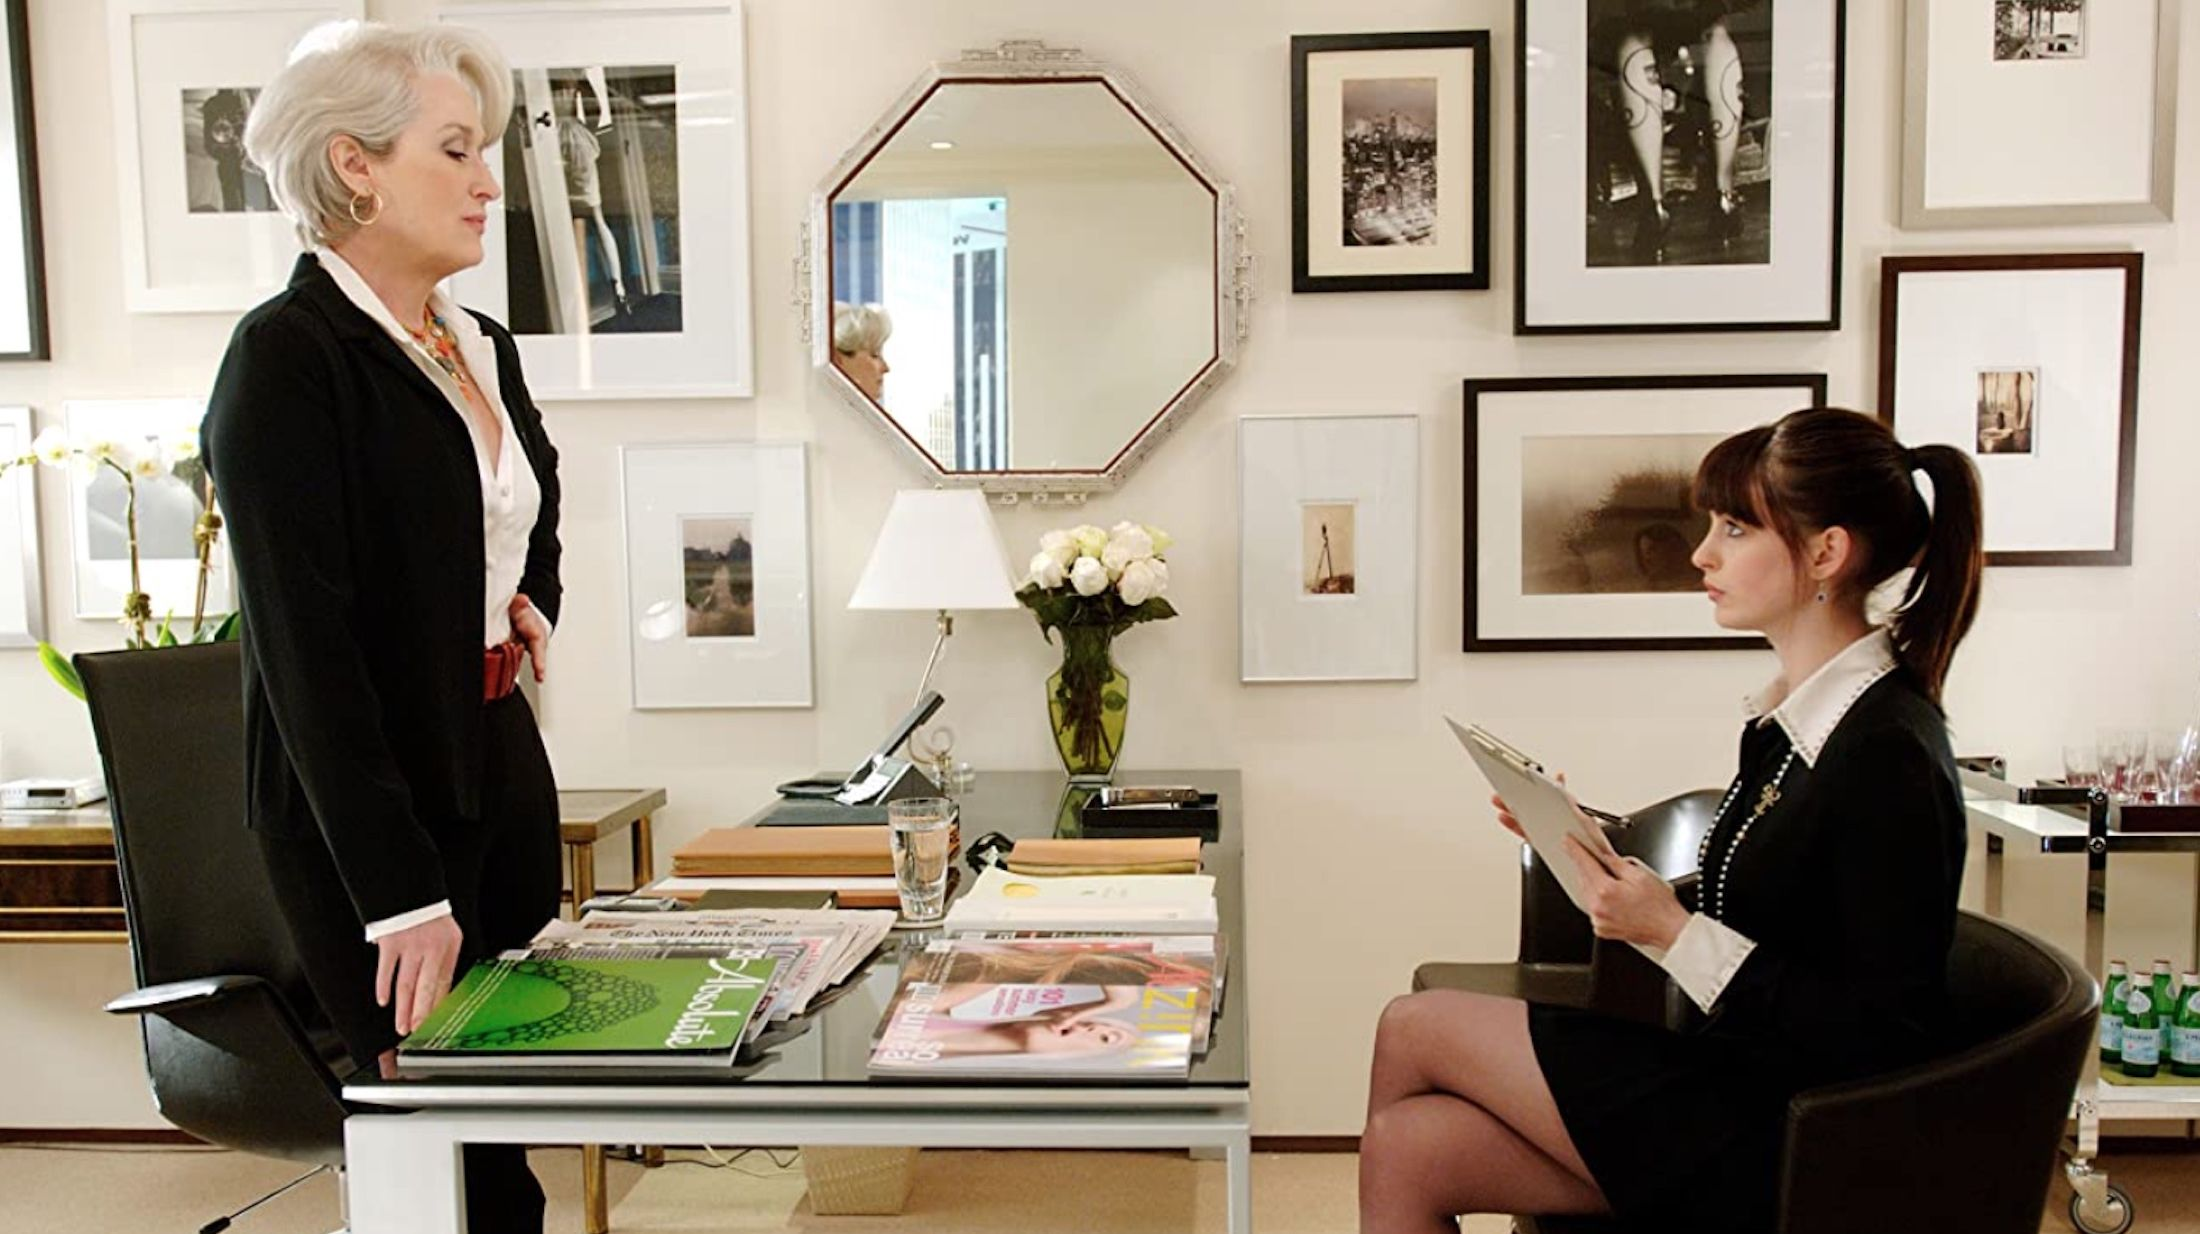 20 Fabulous Facts About 'The Devil Wears Prada'